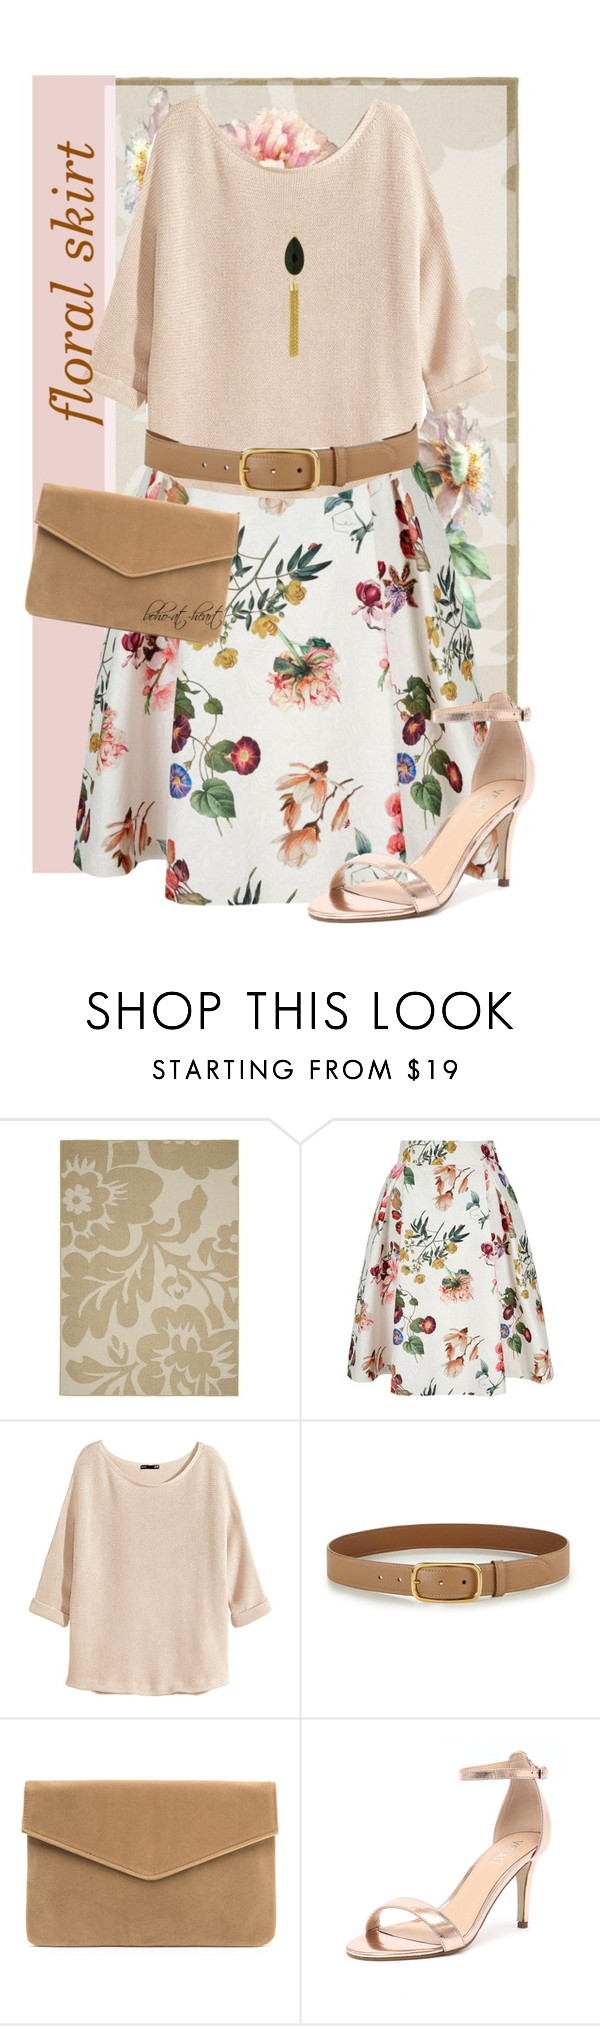 """Floral Skirt"" by boho-at-heart ❤ liked on Polyvore featuring Garland Rug, Yumi, H&M, Prada, Verali and Target"